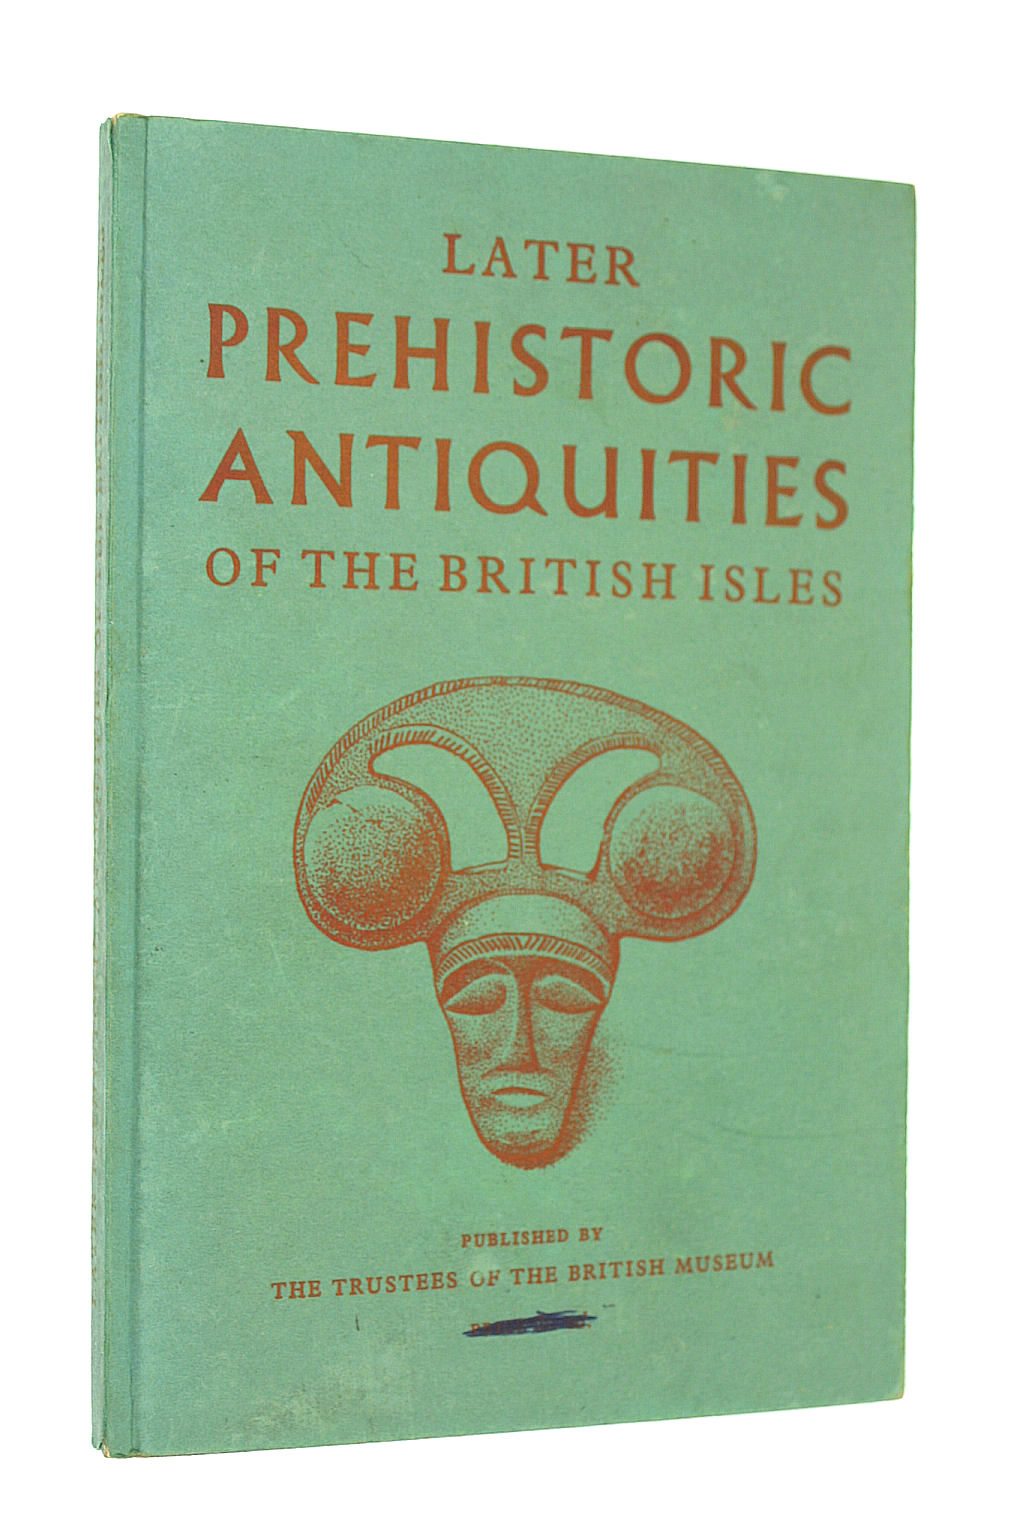 Image for Later prehistoric antiquities of the British Isles